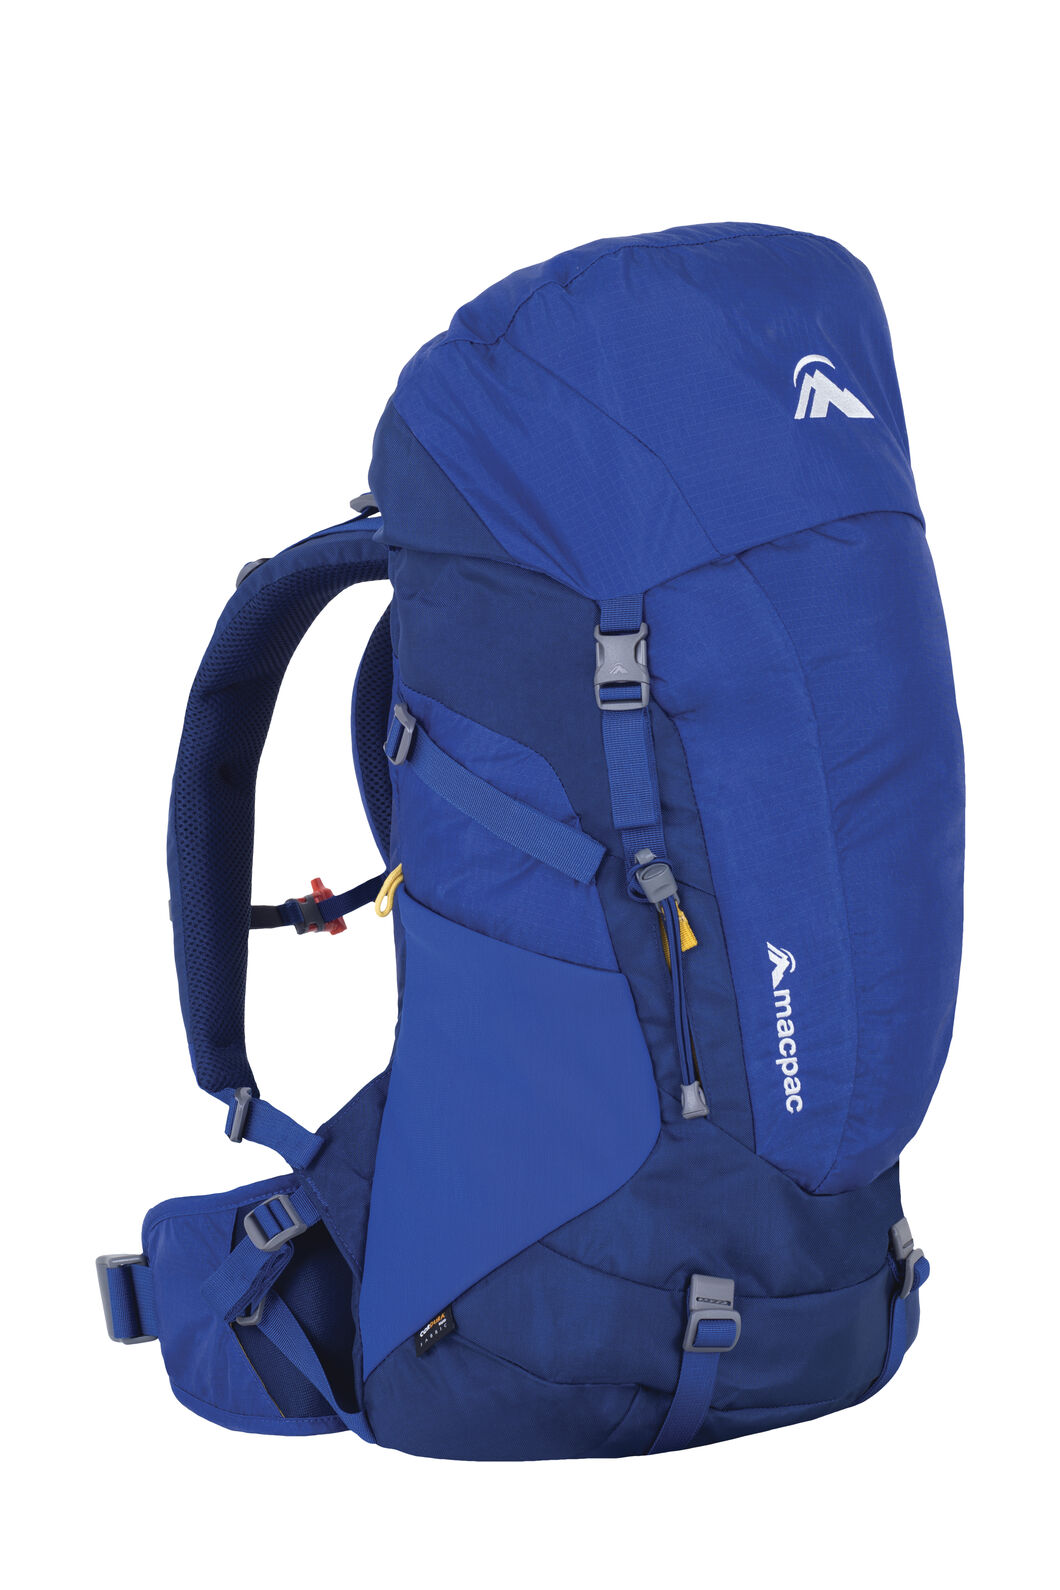 Macpac Torlesse 35L Pack, Surf The Web, hi-res